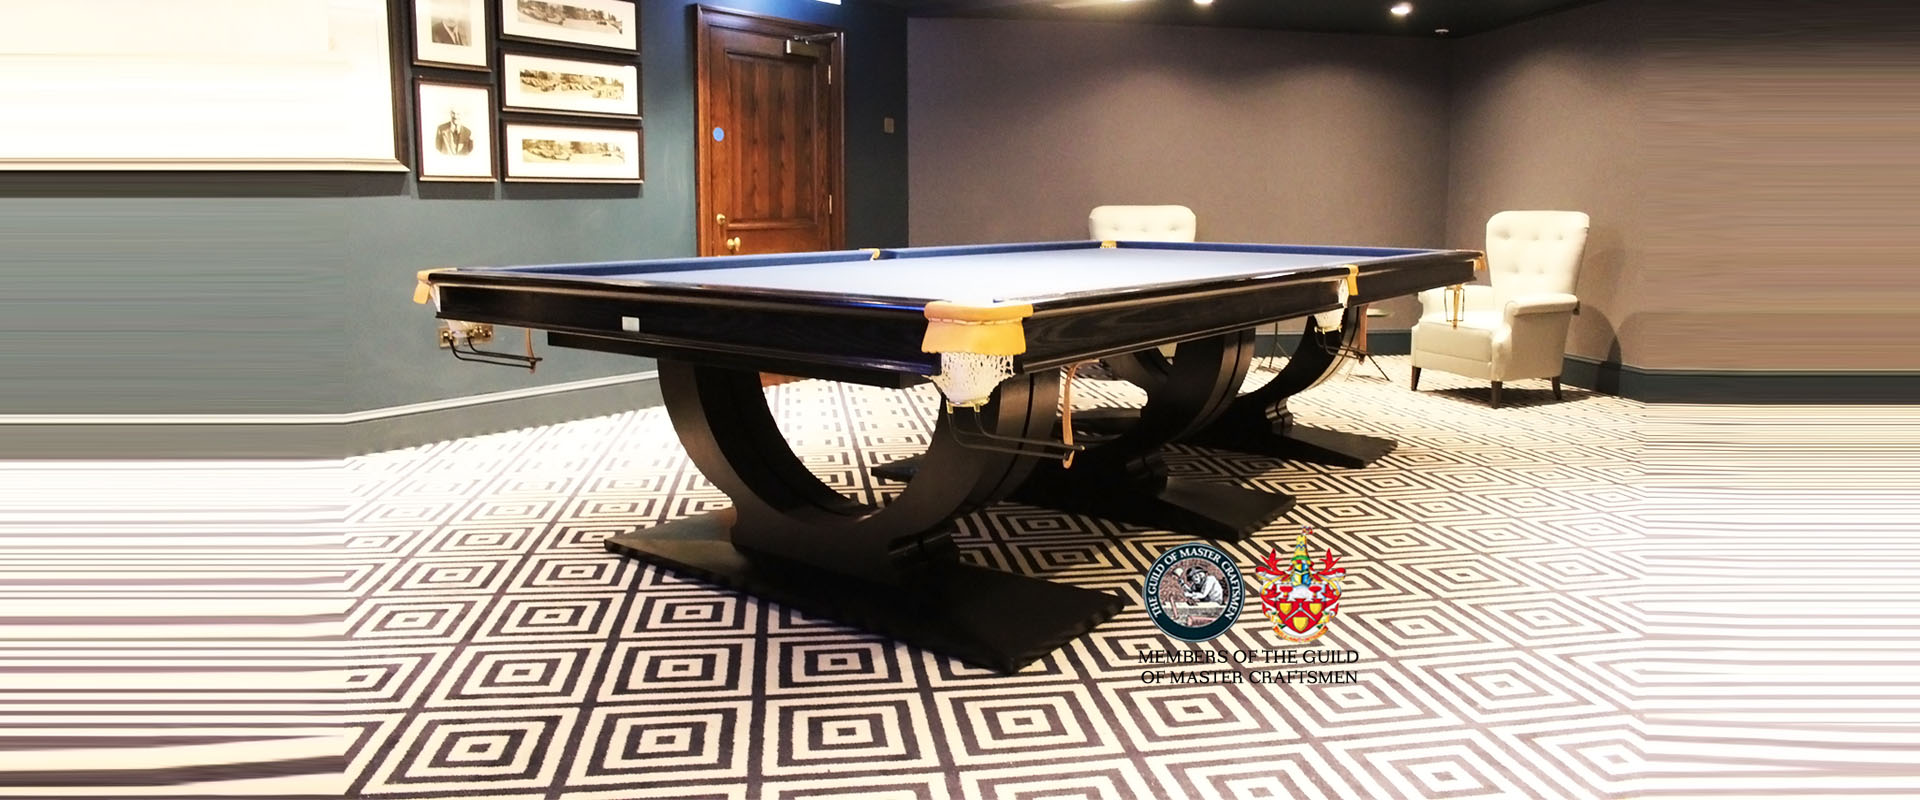 How To Install A Pool Table Slate Installation Home Billiards >> Birmingham Billiards Snooker Tables Pool Tables Snooker Cues